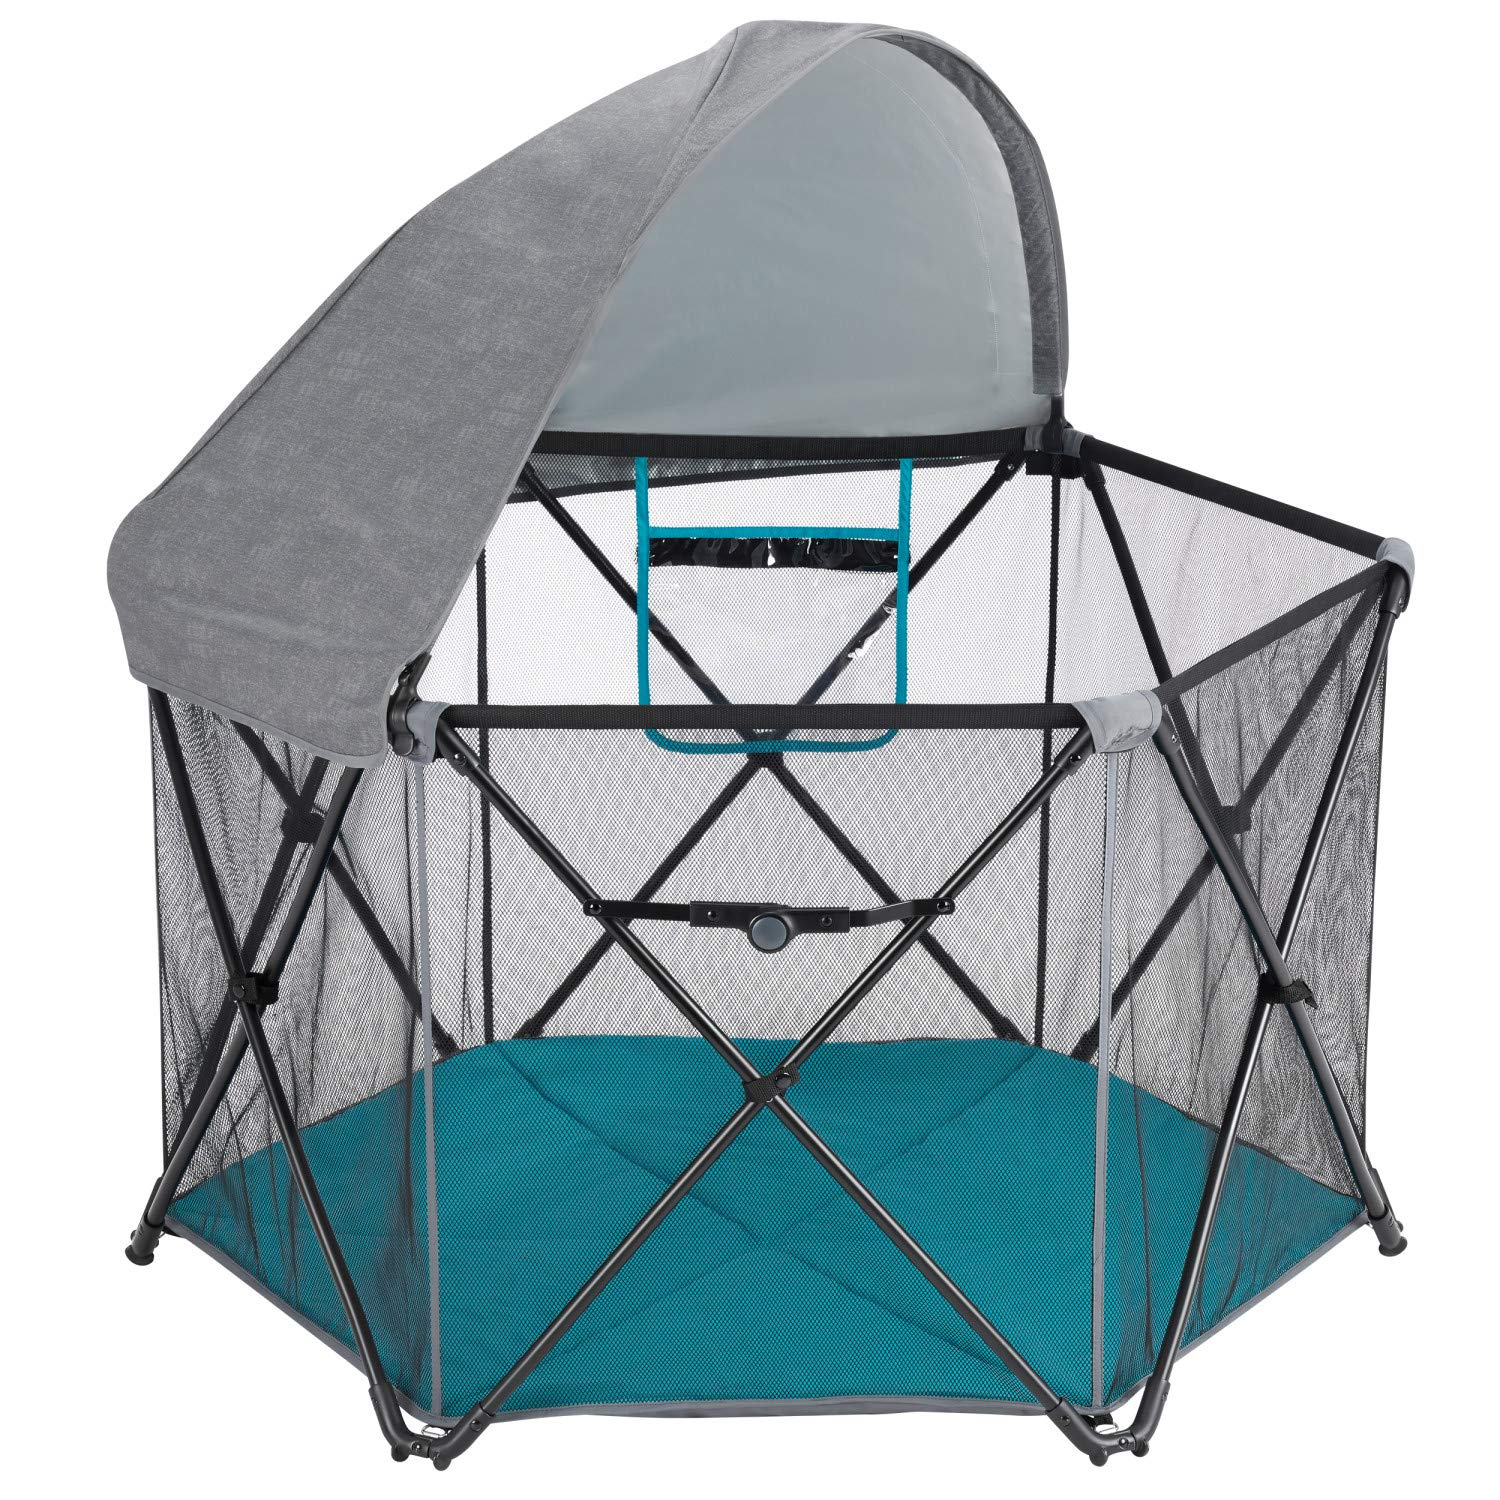 Evenflo Play-Away Portable Playard Cedar Grove